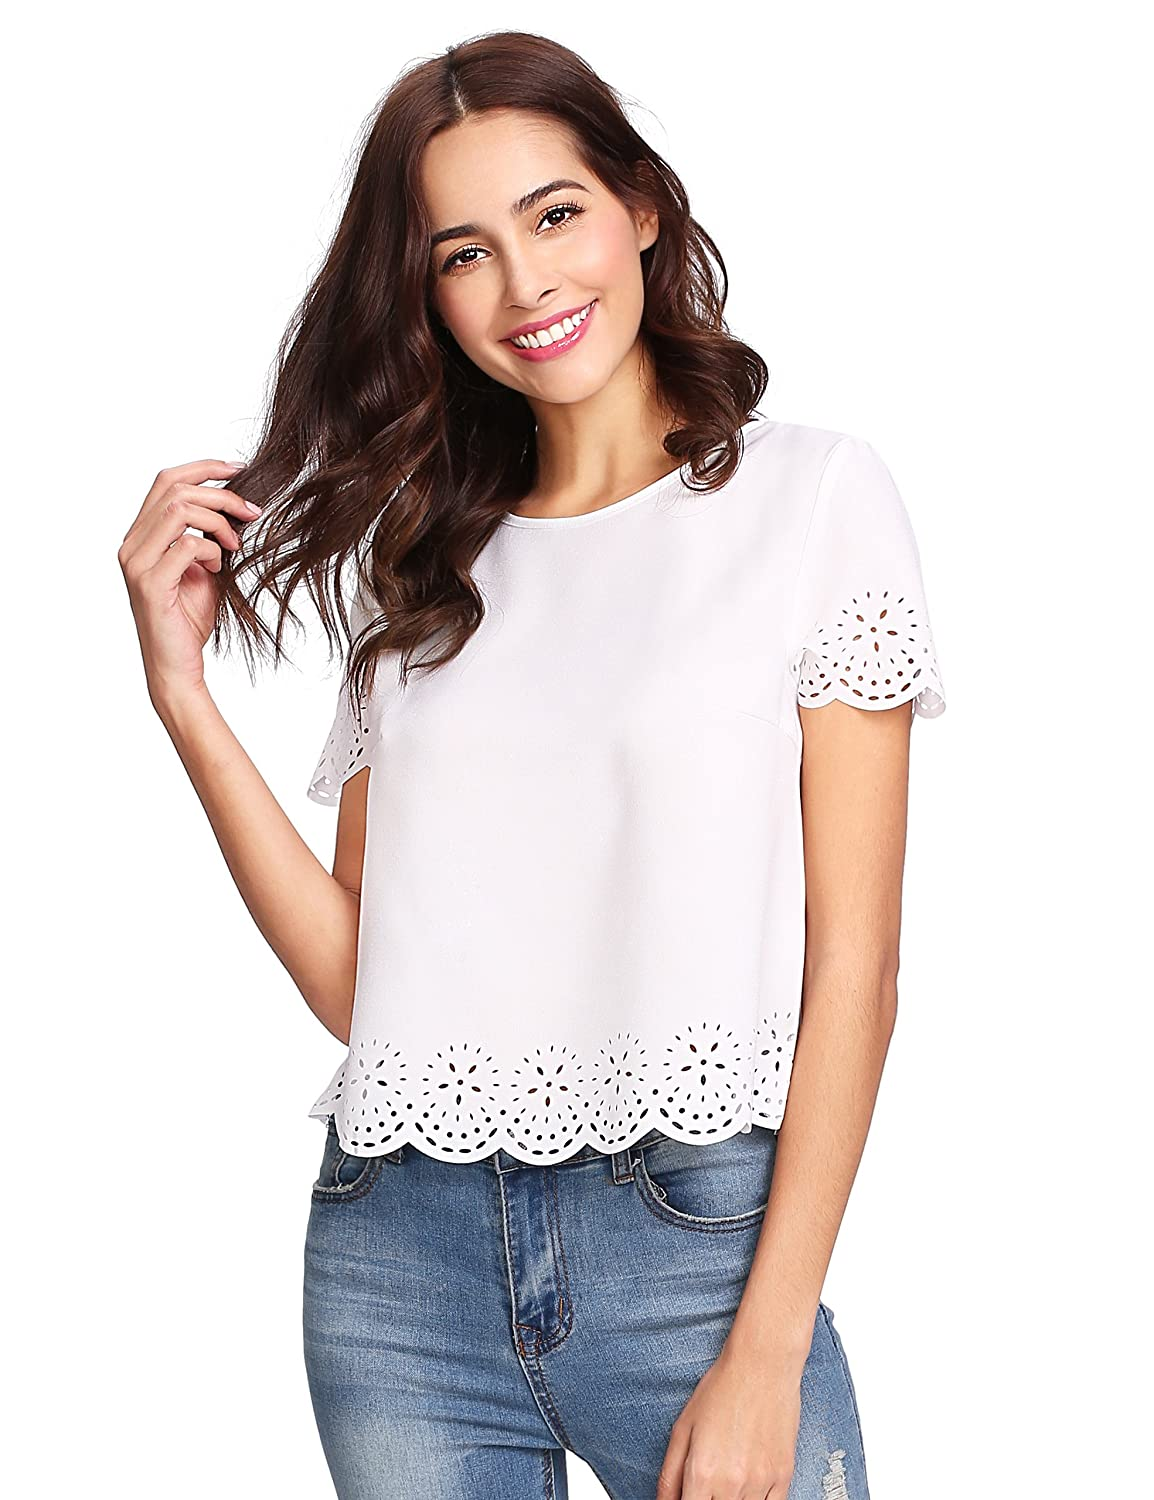 c3bd8f71bc SheIn Women's Casual Round Neck Summer Short Sleeve Scallop T-Shirt Top  Blouse at Amazon Women's Clothing store: